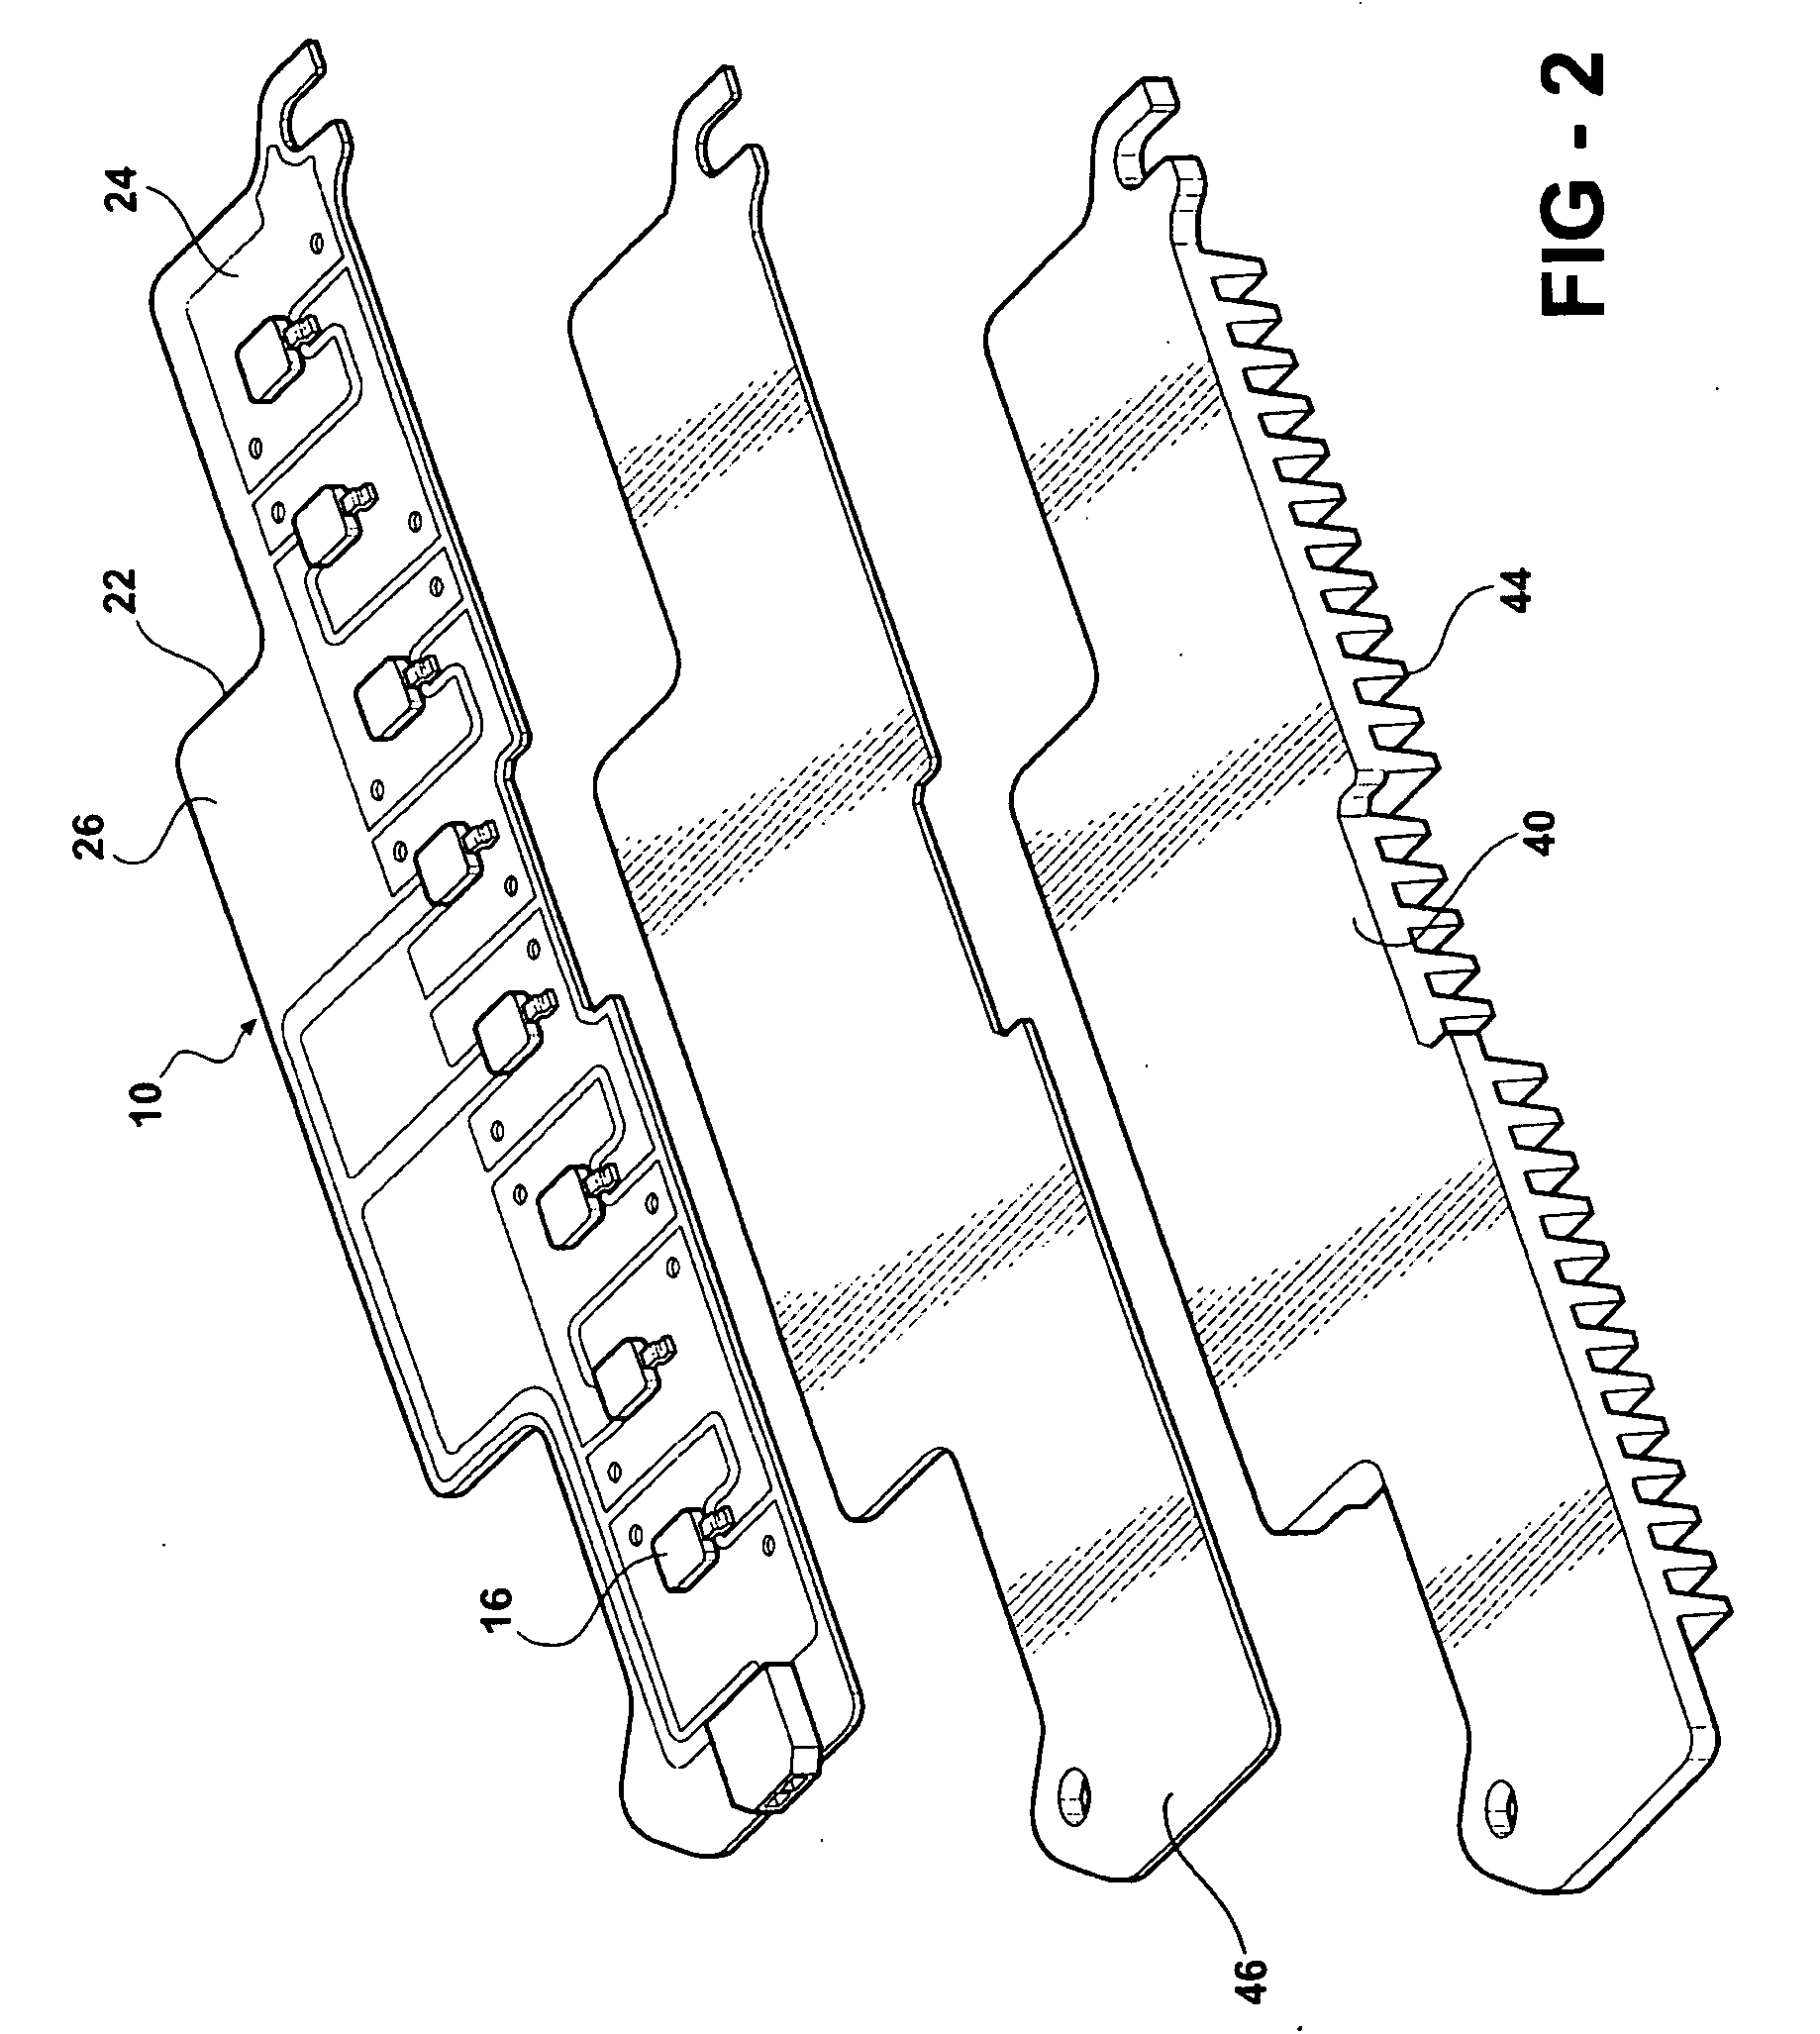 patent us20060181878 - led light module assembly